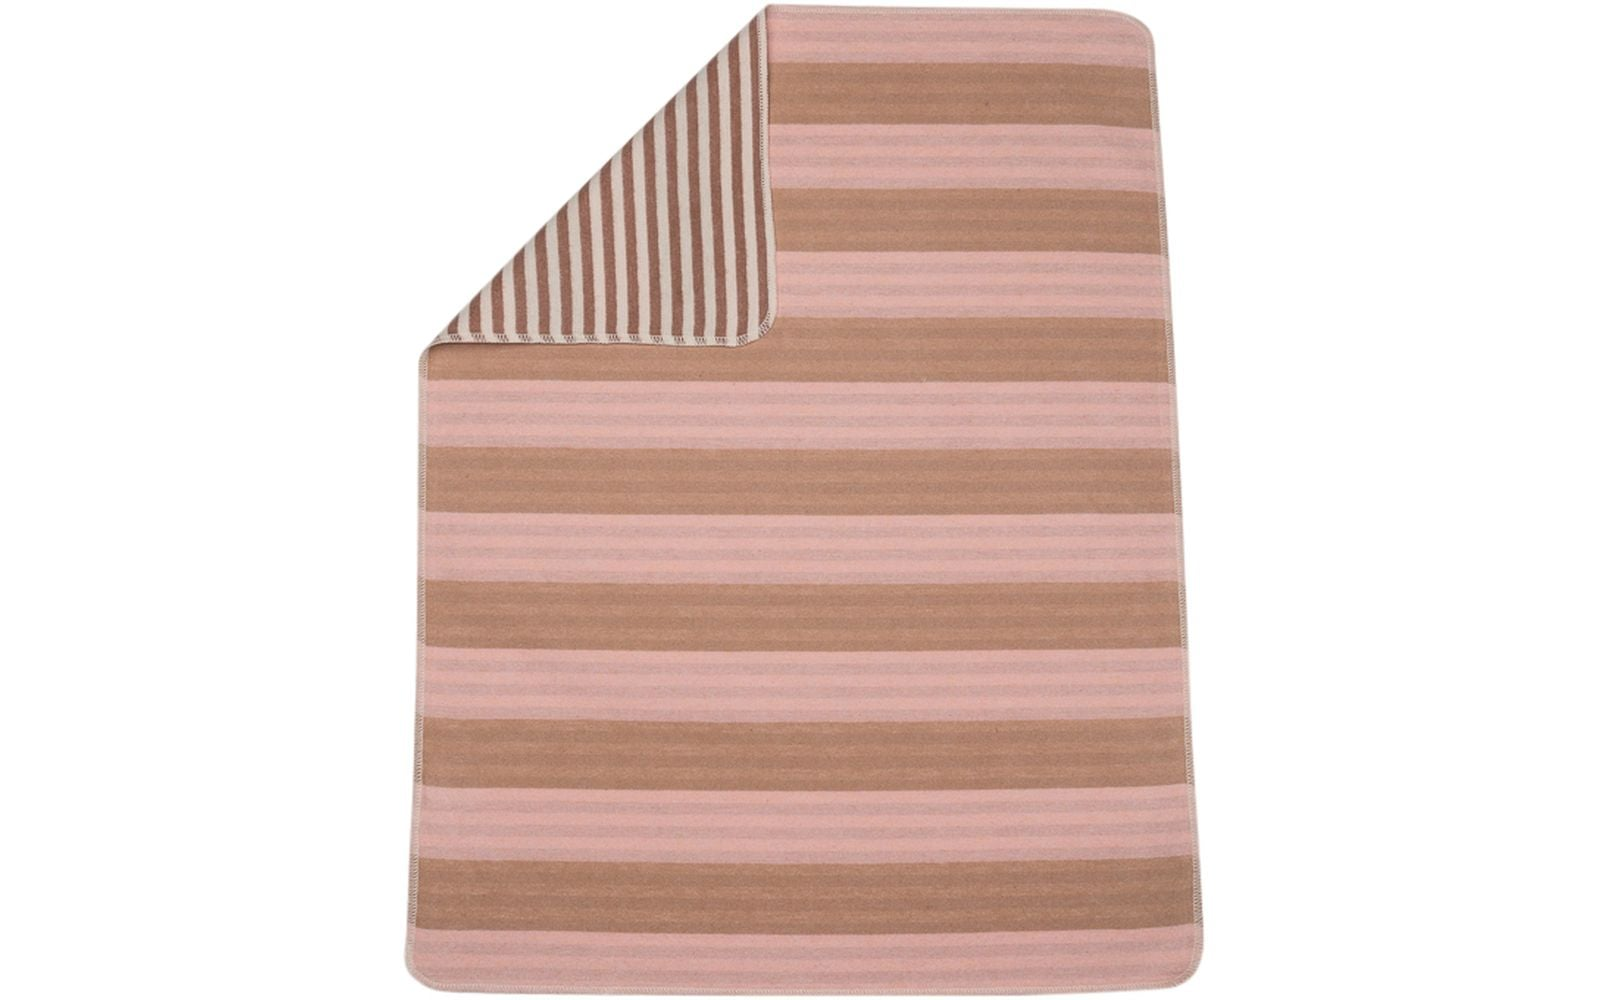 Juwel Blanket/Stripes/Pink